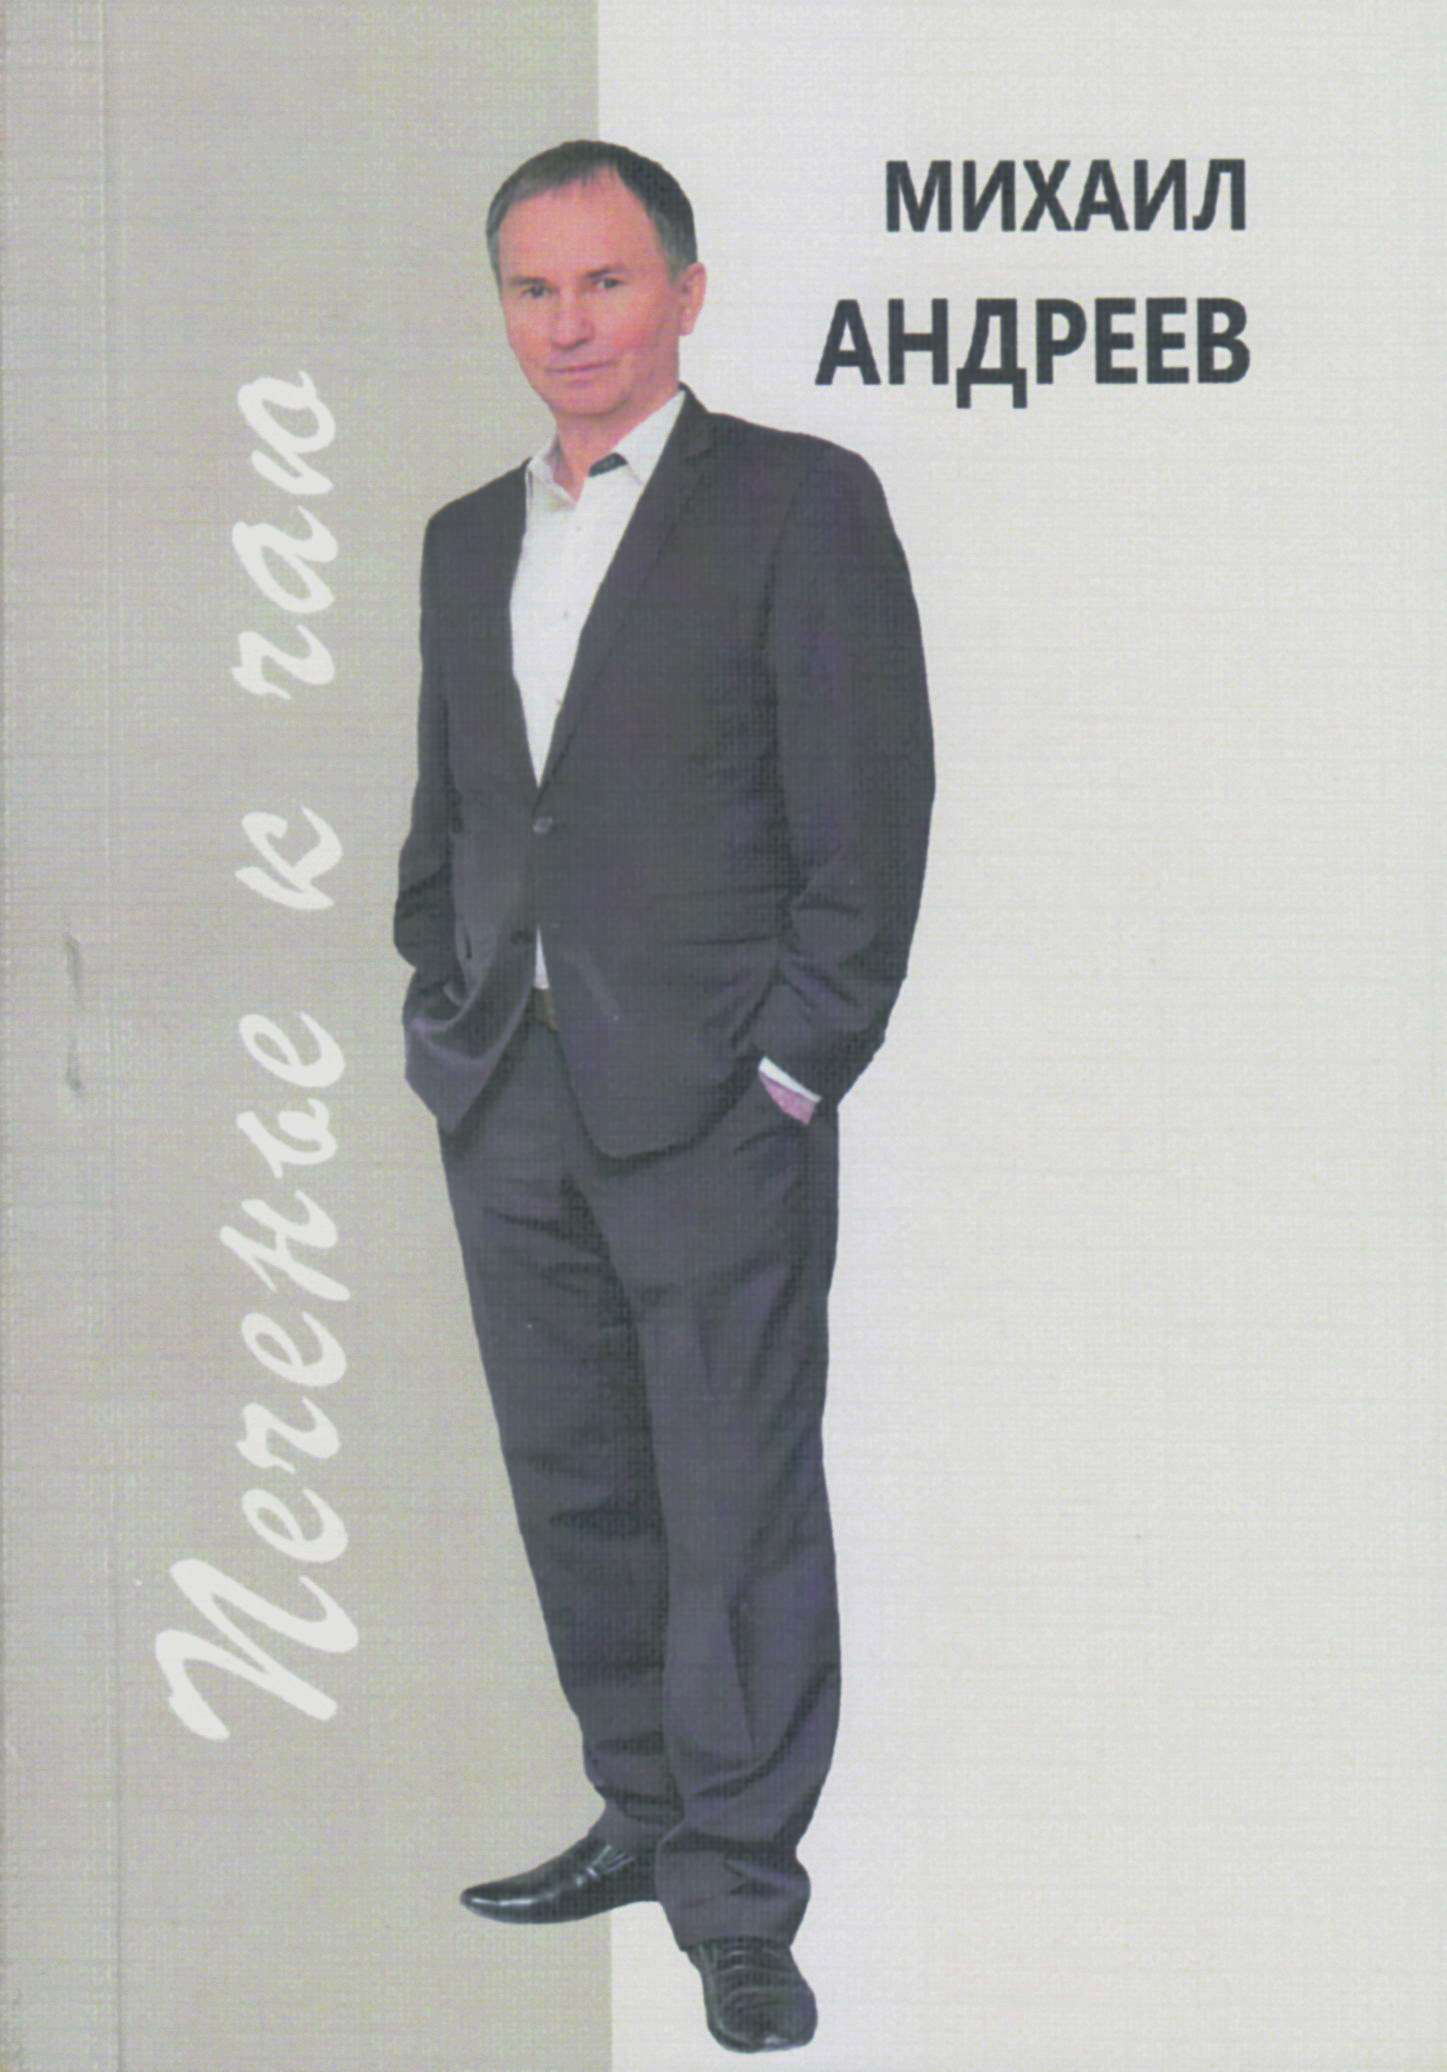 5 Andreev